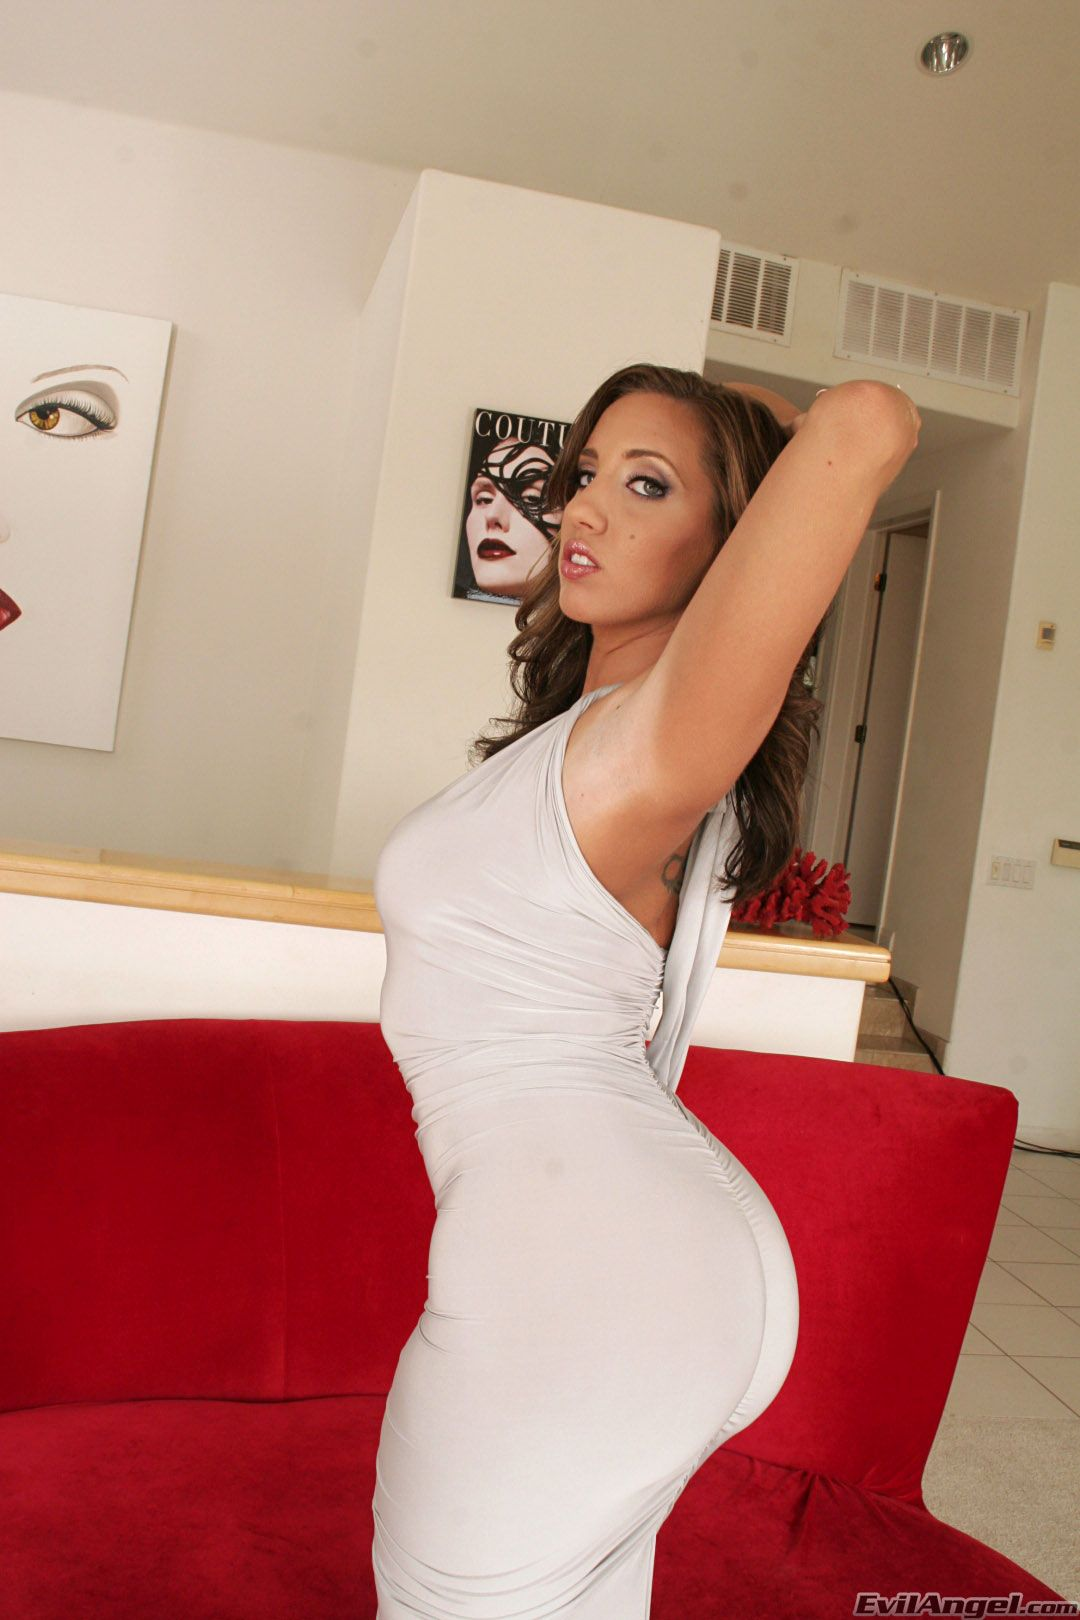 Pin on Kelly Divine